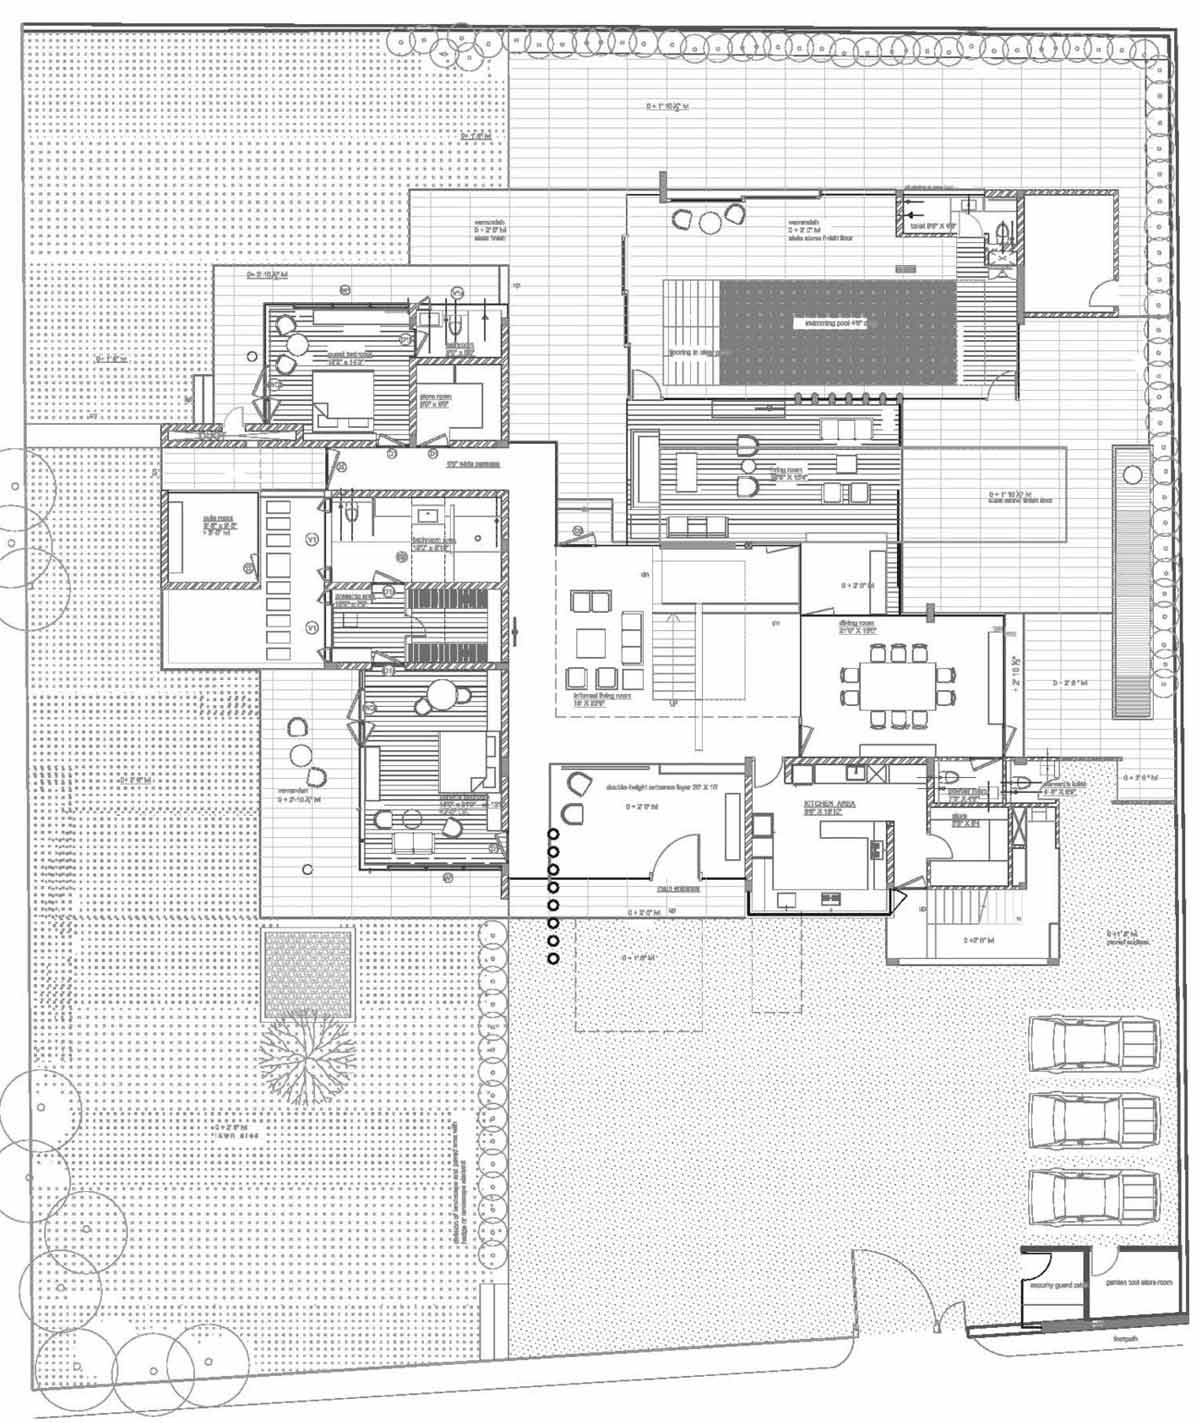 Ground Floor Plan, Poona House in Mumbai, India by Rajiv Saini